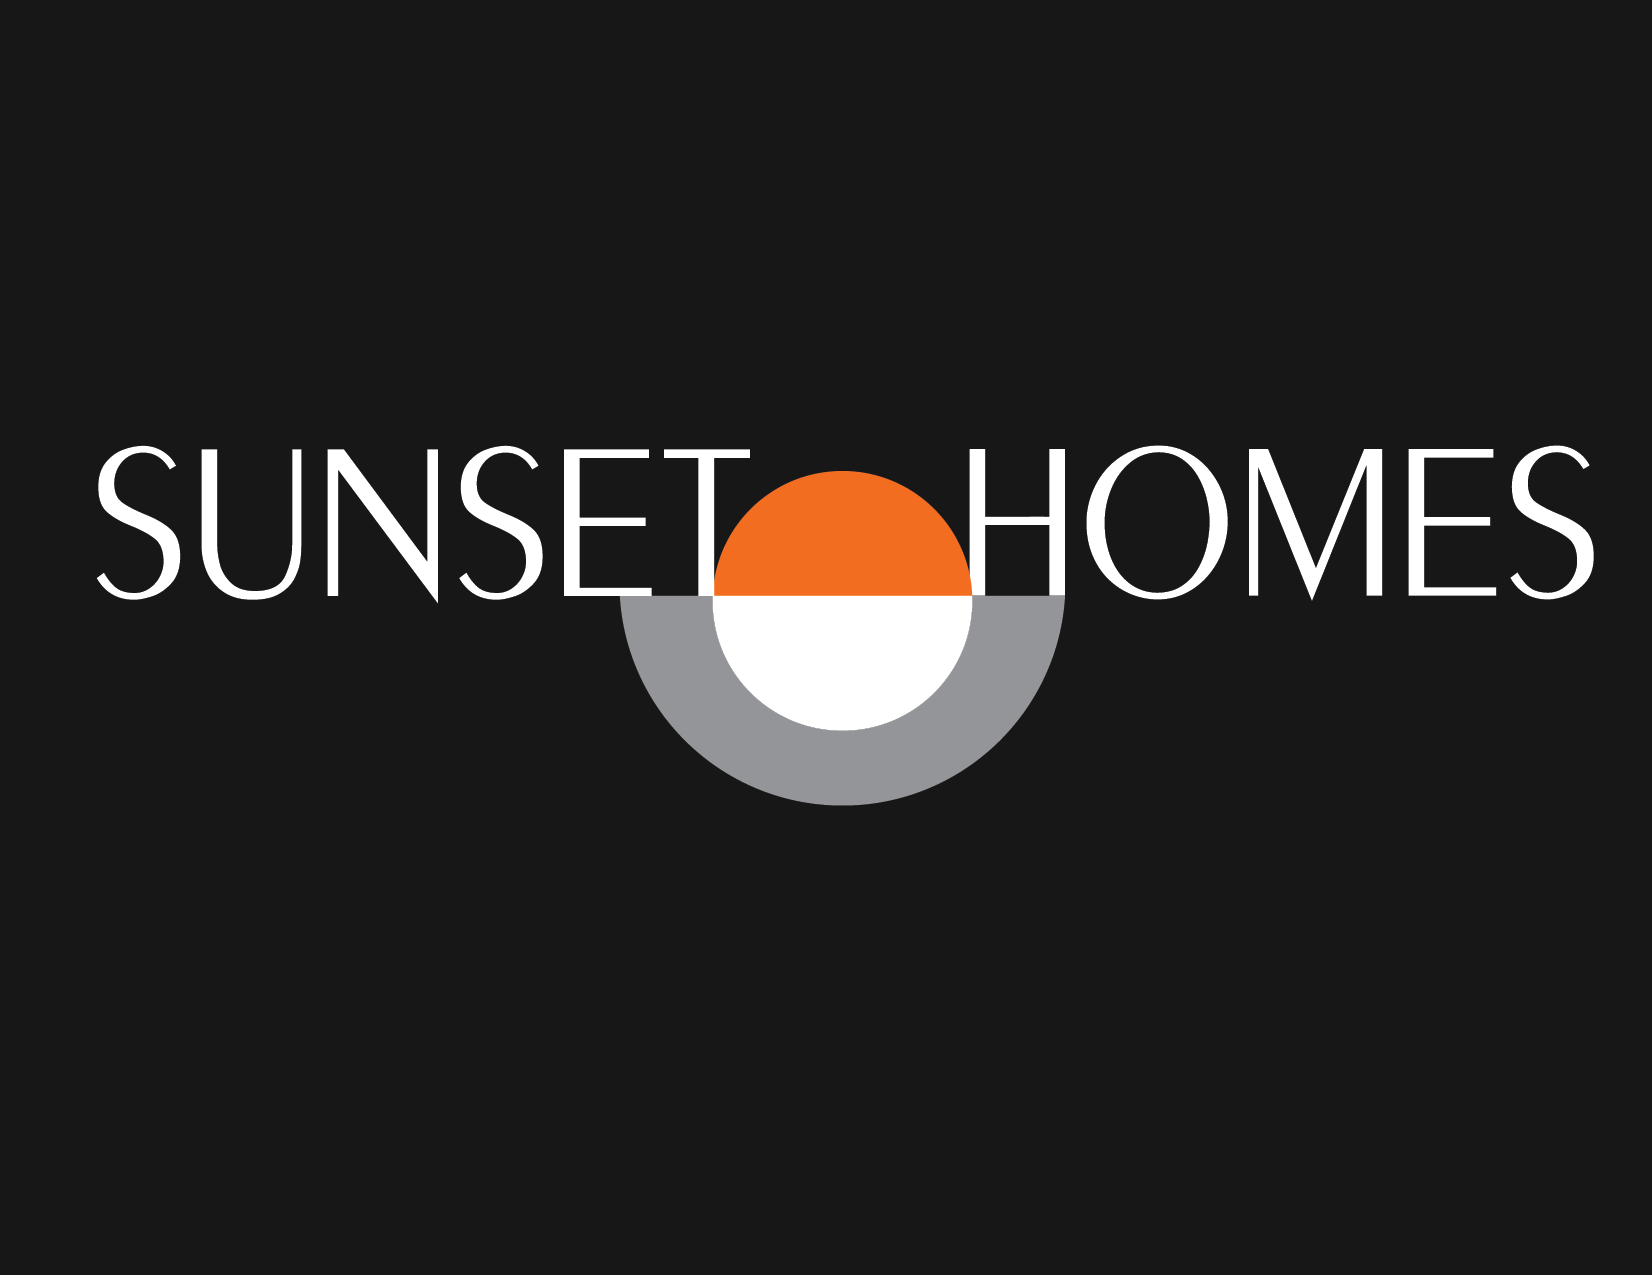 Sunset Homes logo black